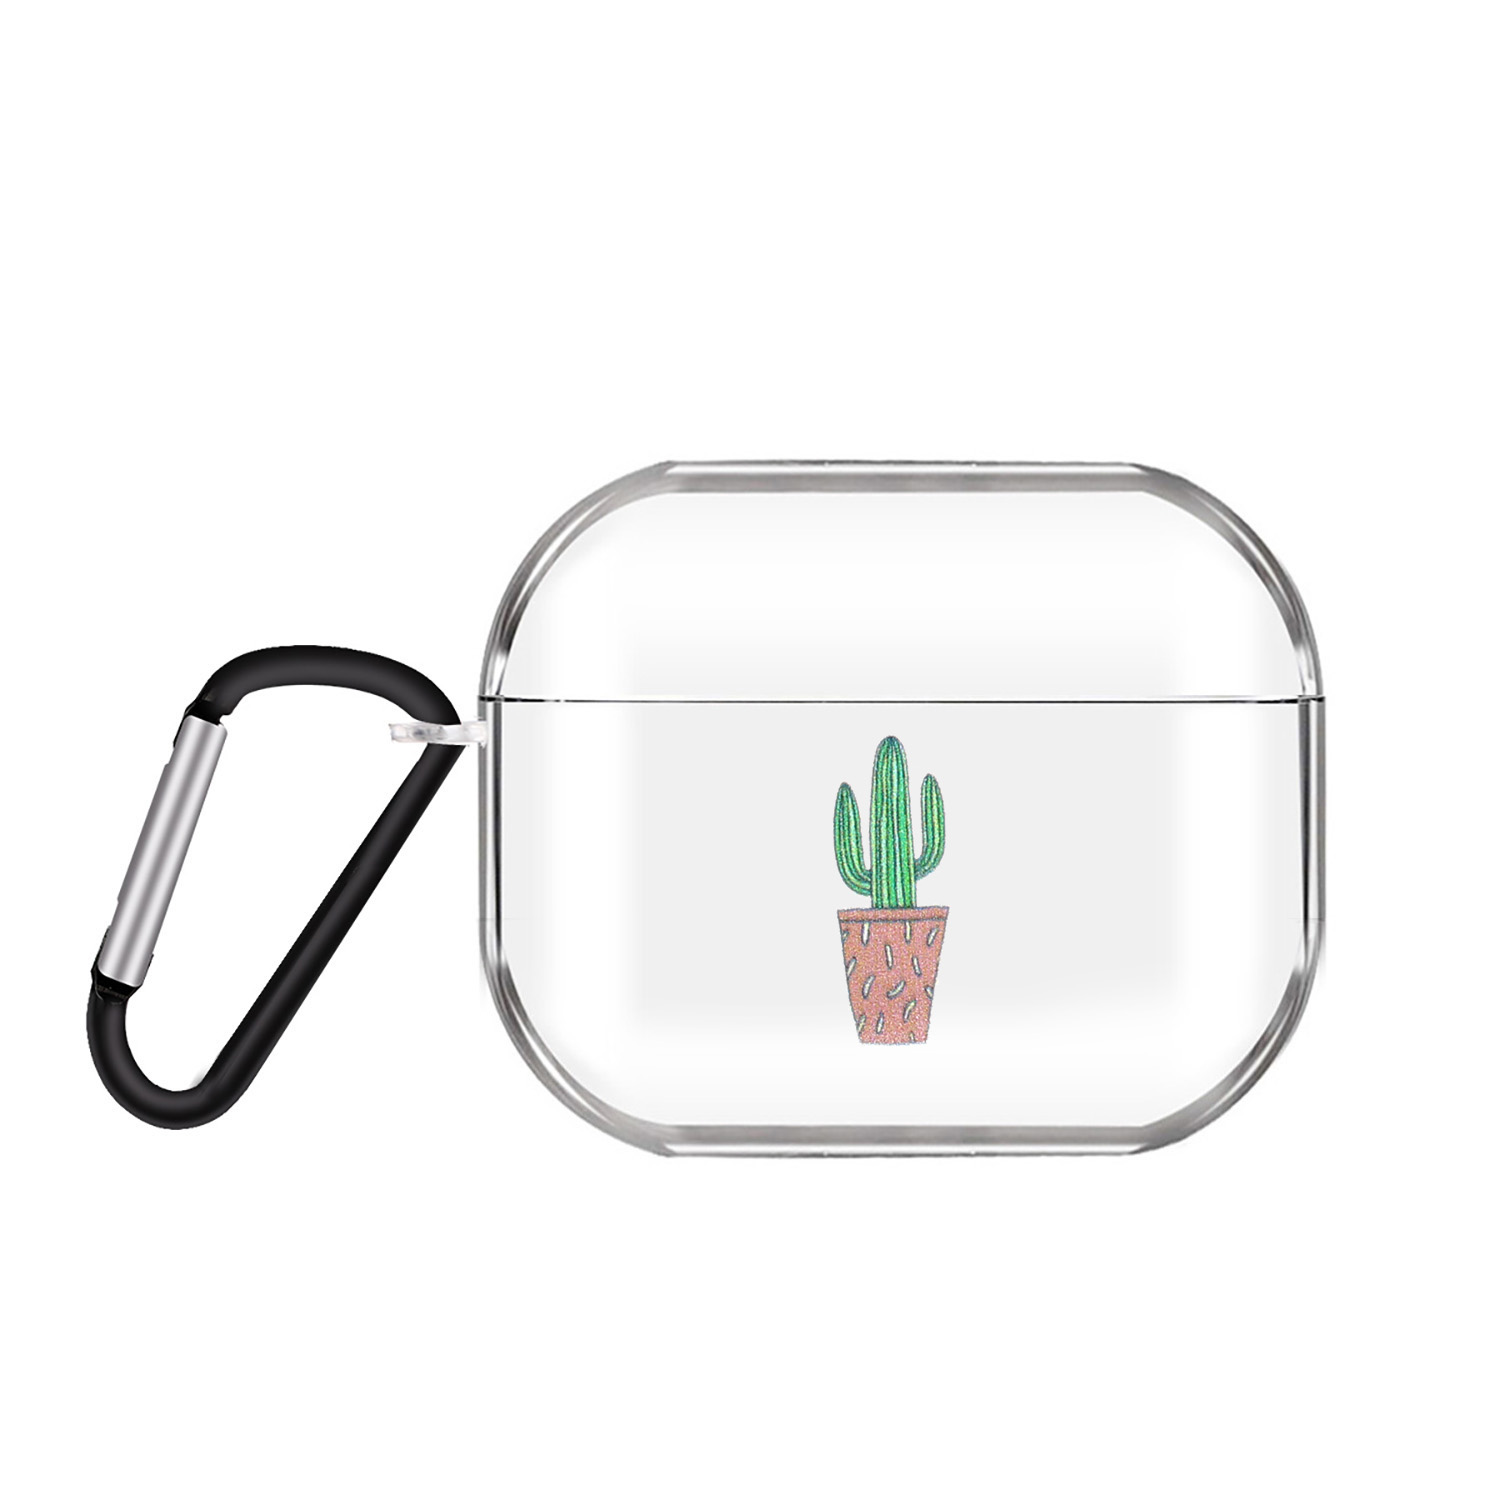 For AirPods Pro Headphones Case Transparent Earphone Shell with Metal Hook Overall Protection Cover 8 cactus